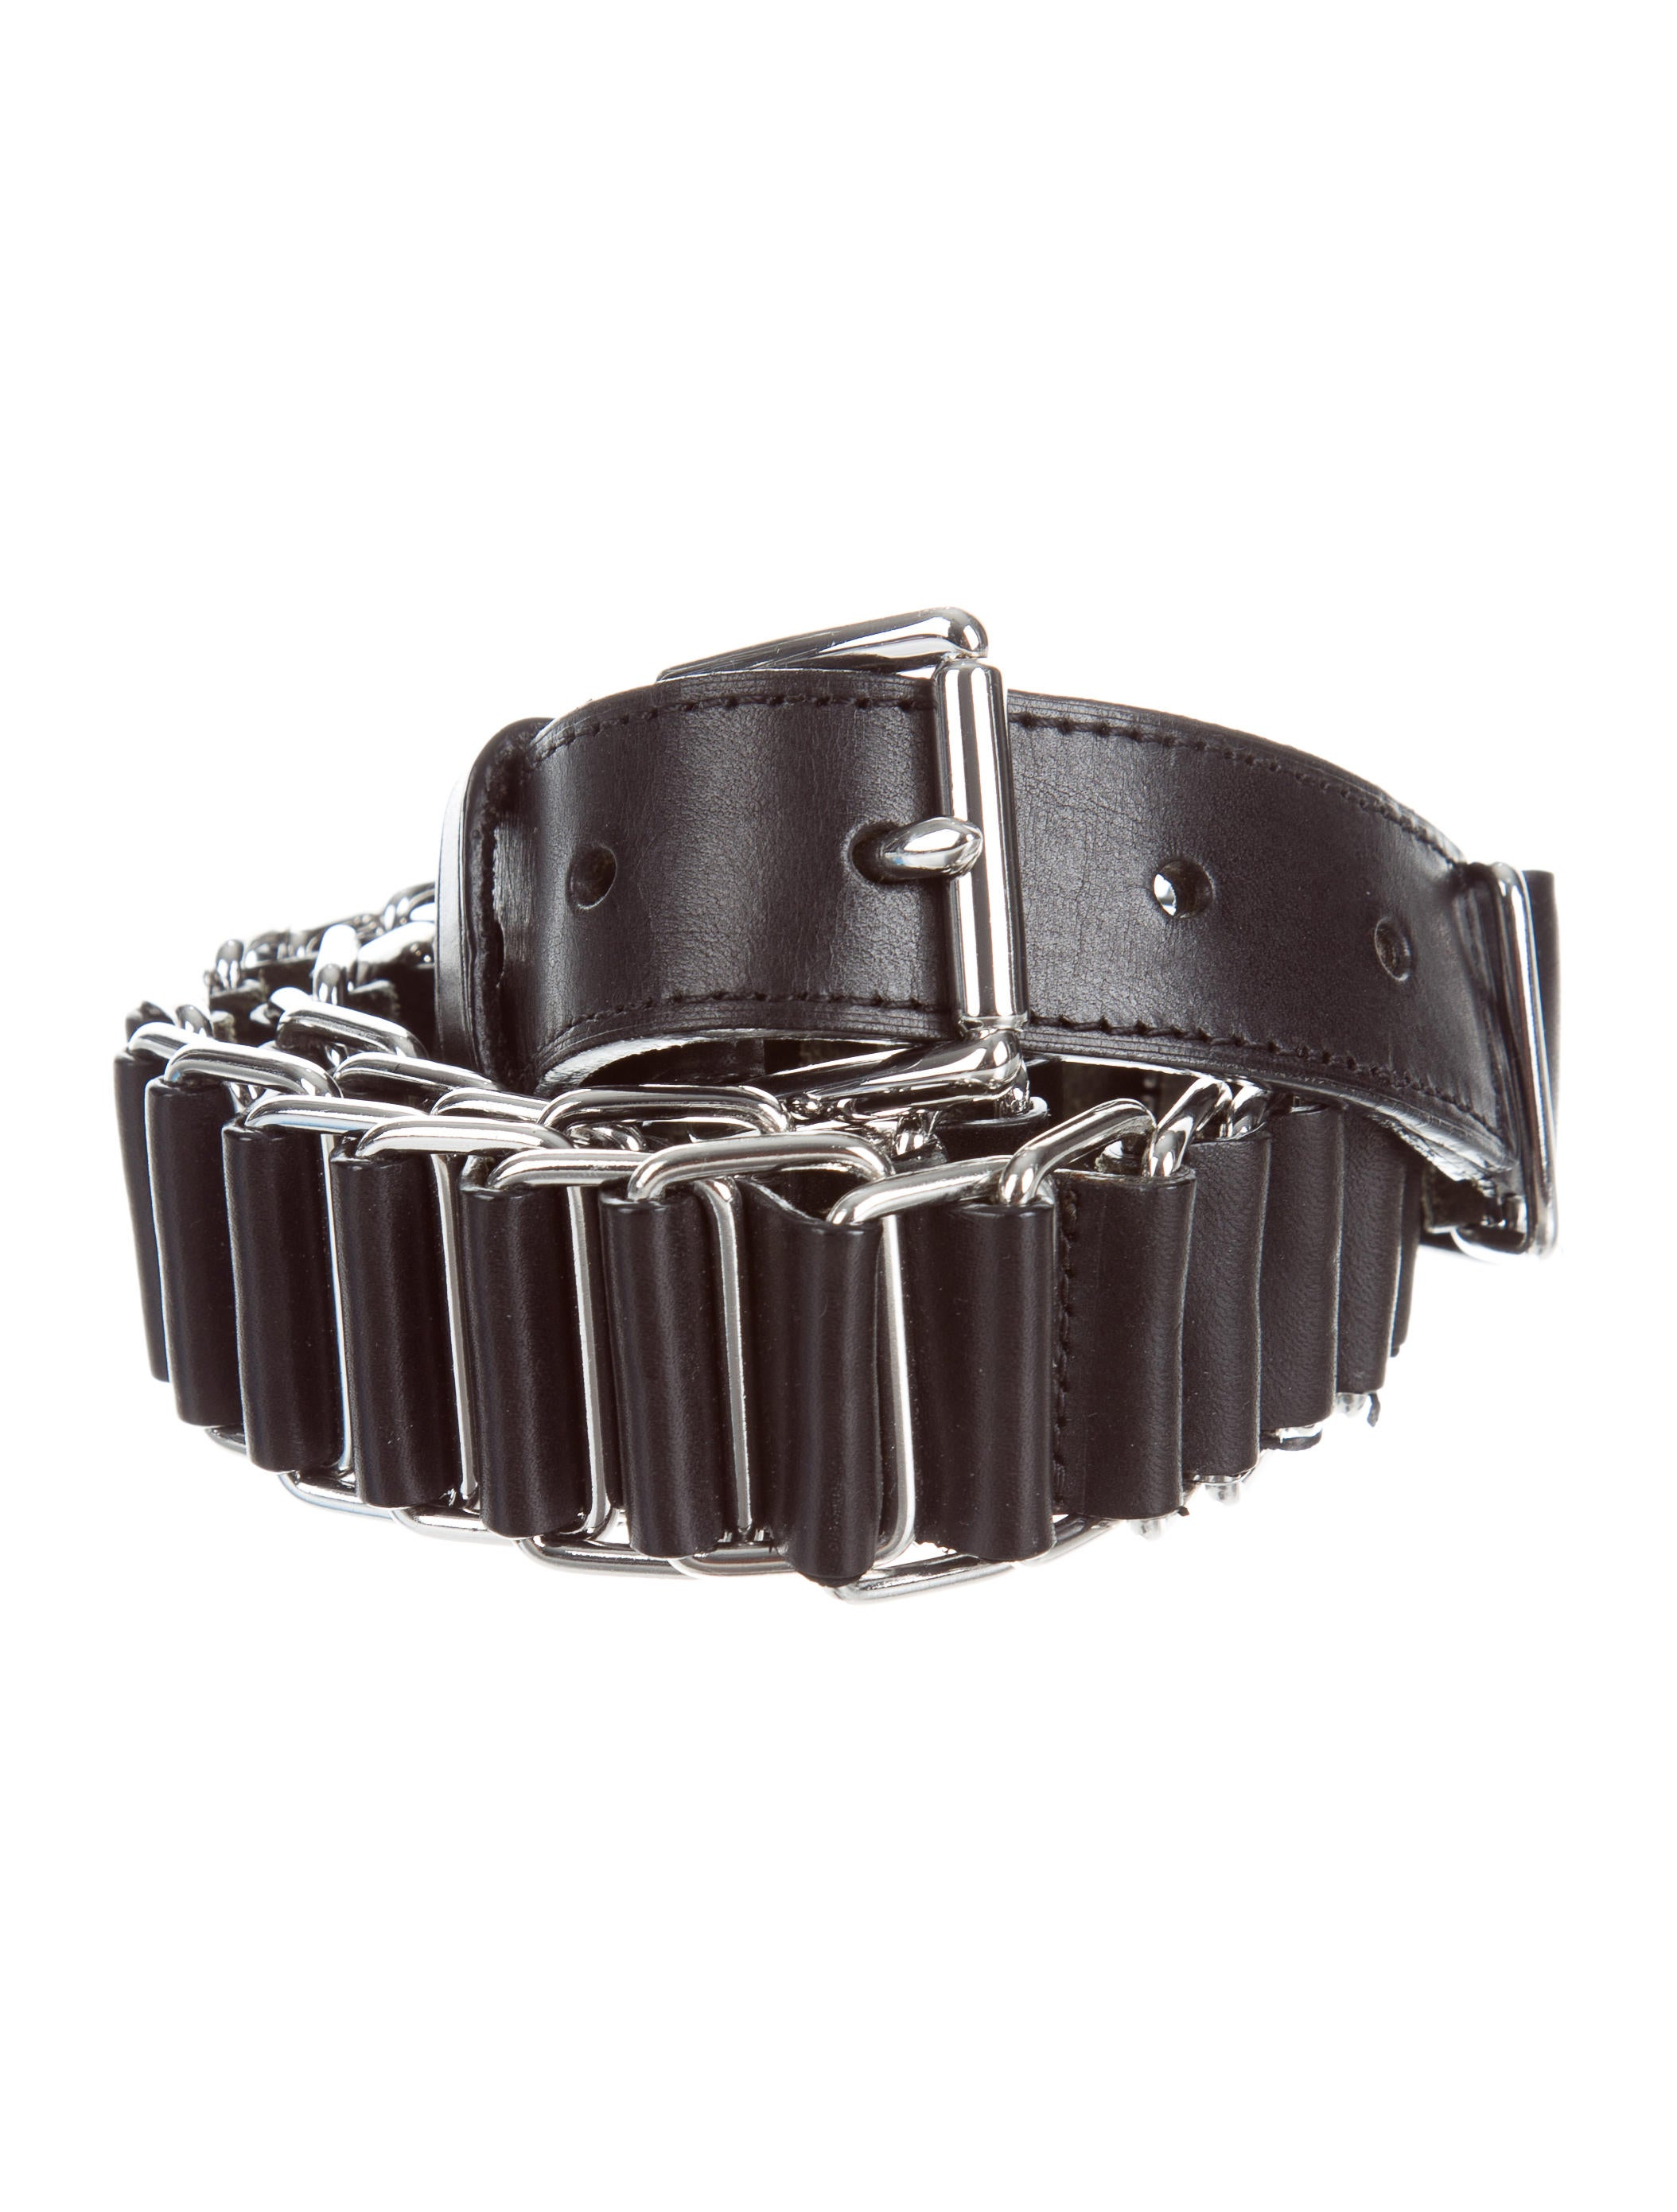 Shop BCBG's selection of belts for women. Browse a variety of women's fashion belts, including studded belts, fringe belts and more to find the perfect style for you. Shop BCBG today! BCBG.